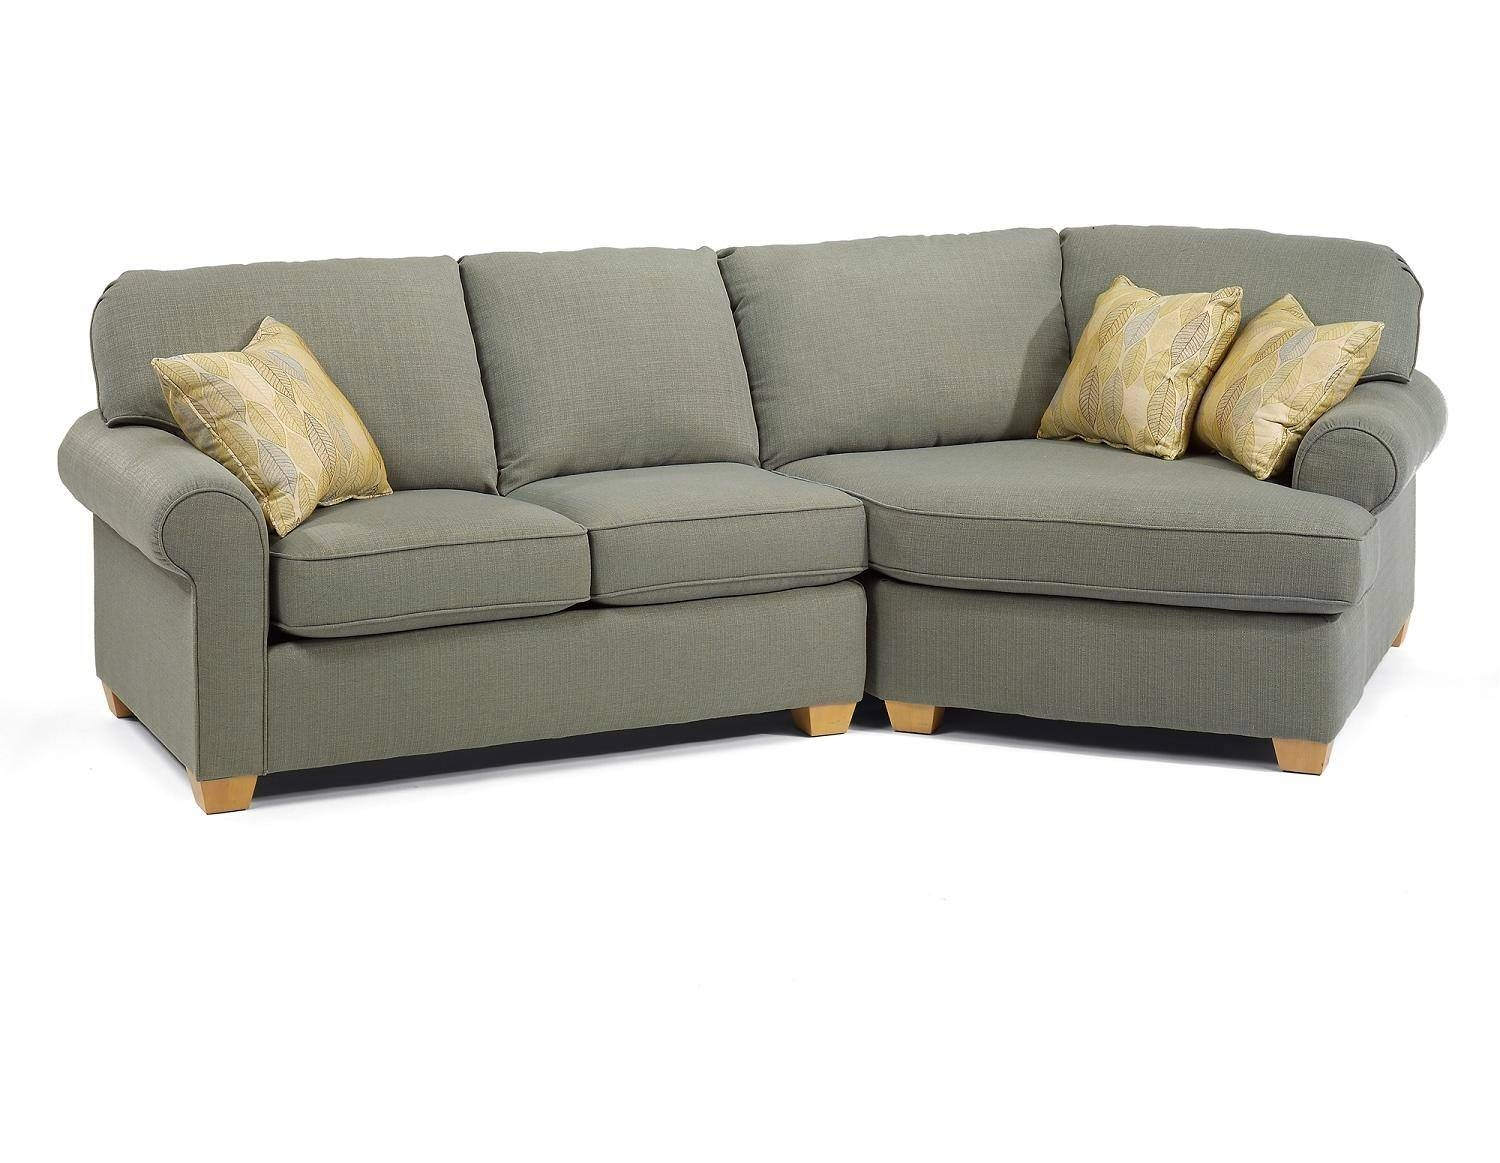 Small Sectional Sofa | Small Sectional Sofa Basement - Youtube in Small Sectional Sofa (Image 23 of 30)